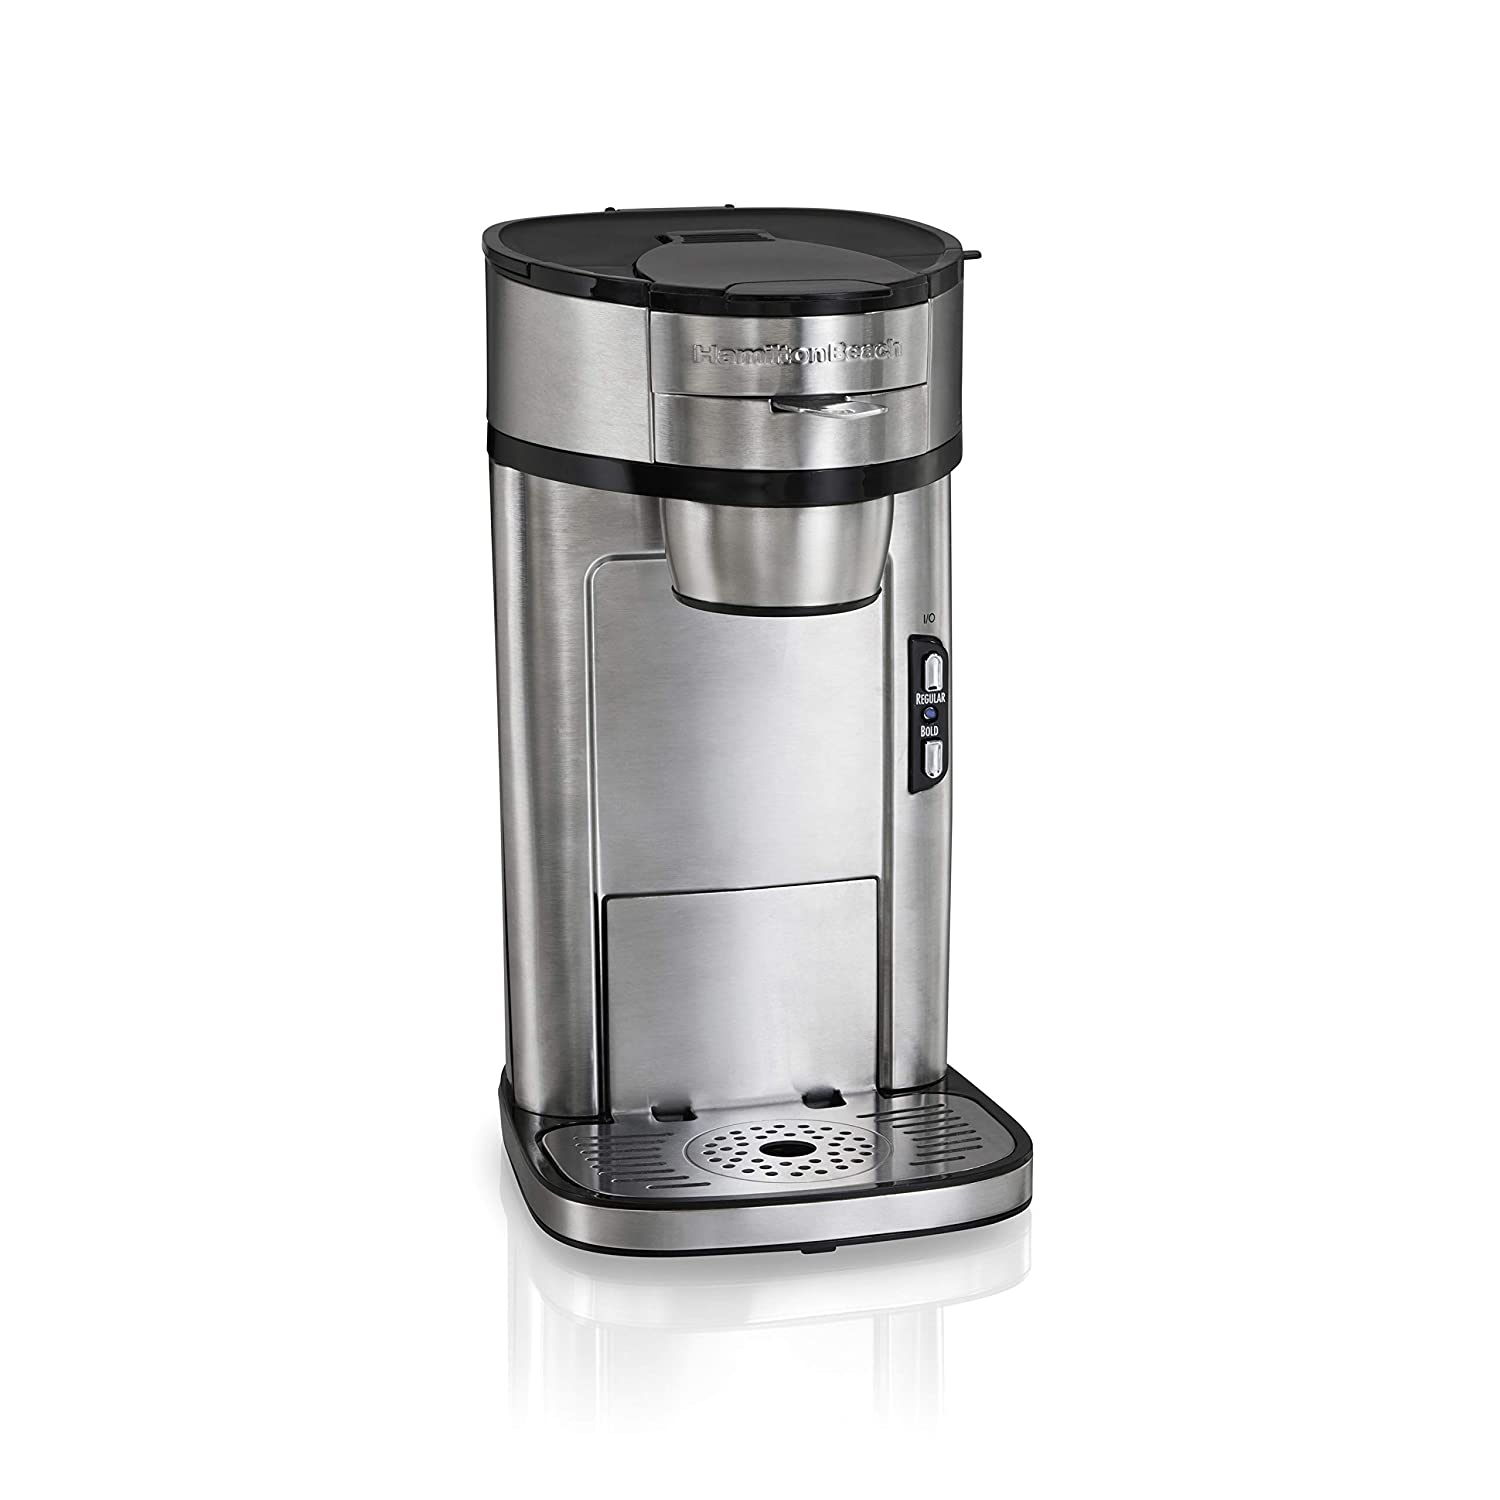 Hamilton Beach The Scoop Single Serve Coffee Maker, Fast Brewing, Stainless Steel (49981A),